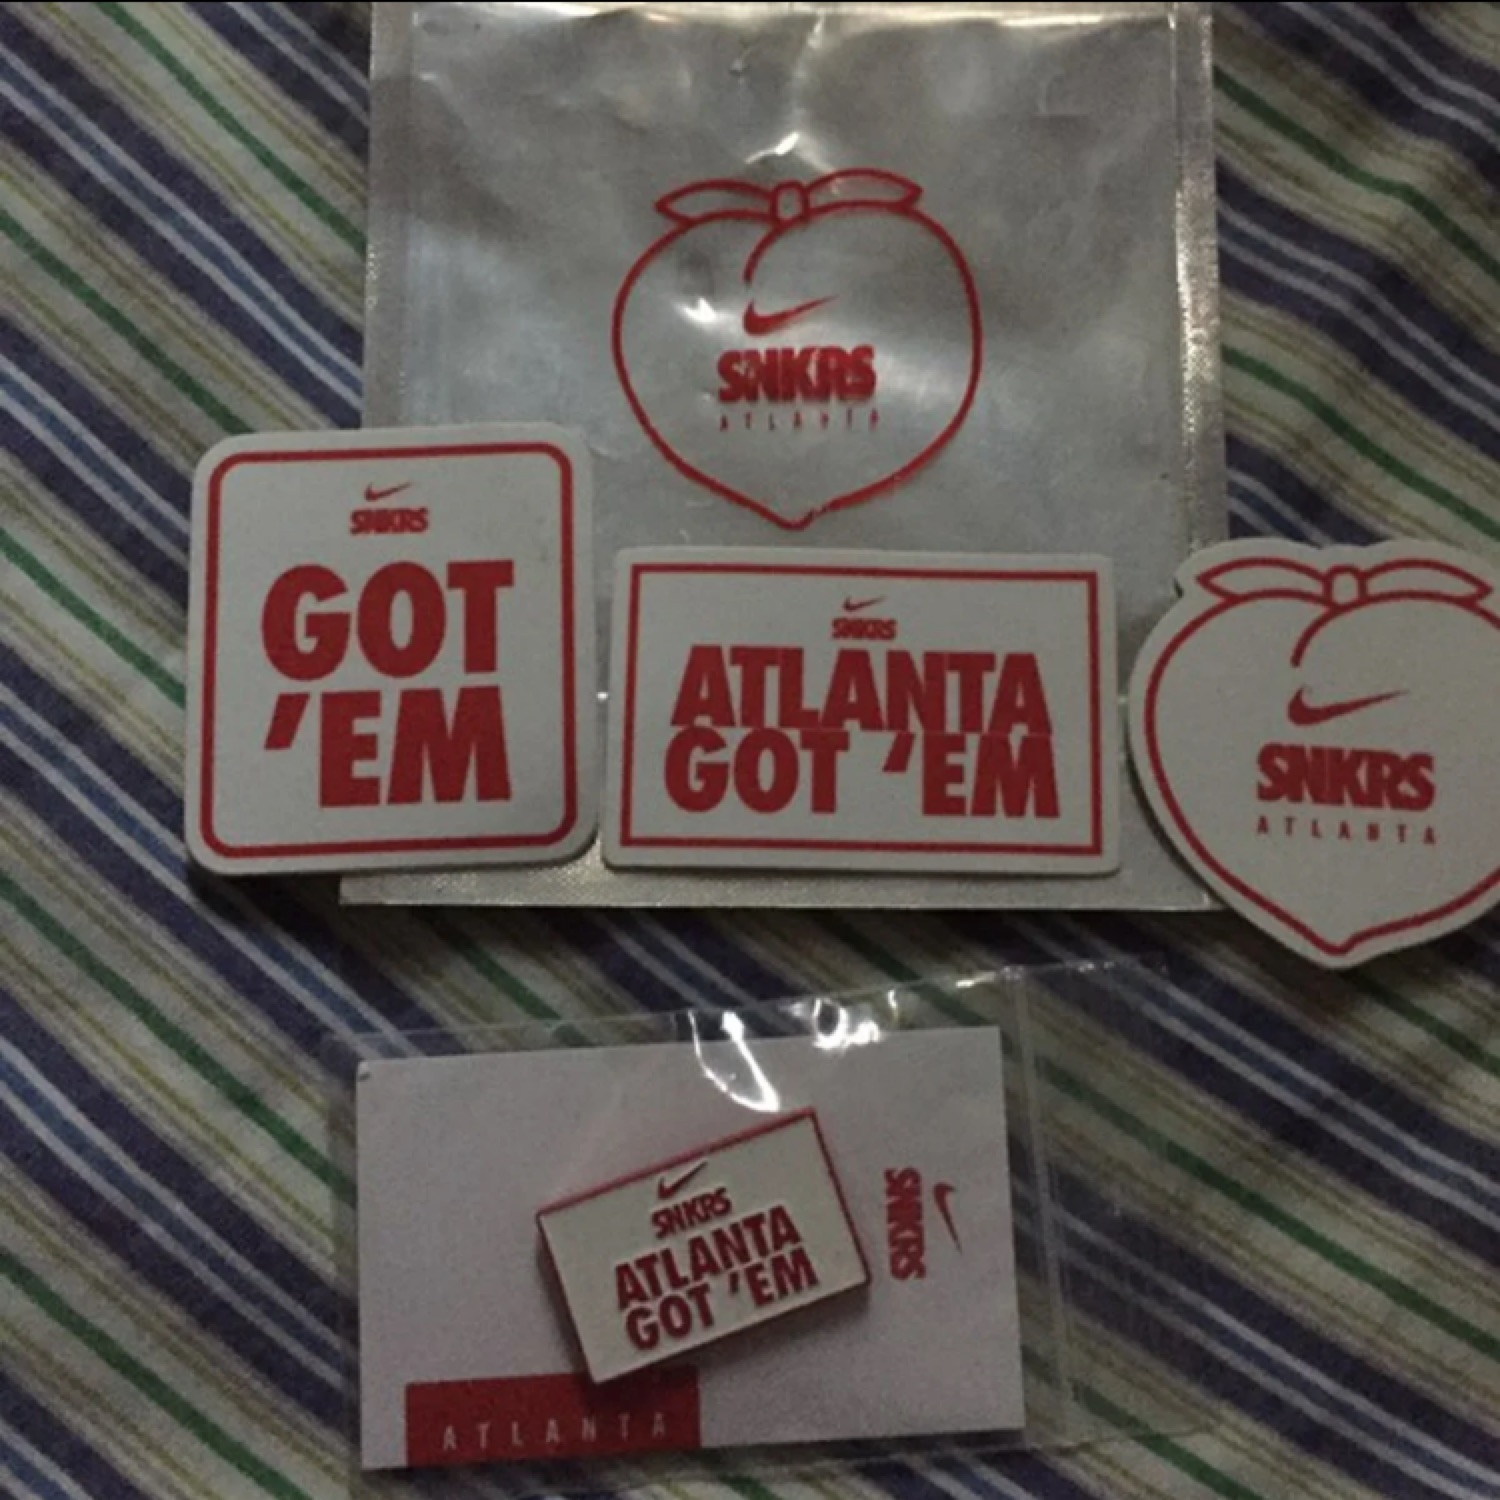 Nike Snkrs Atlanta Pin & Sticker Set